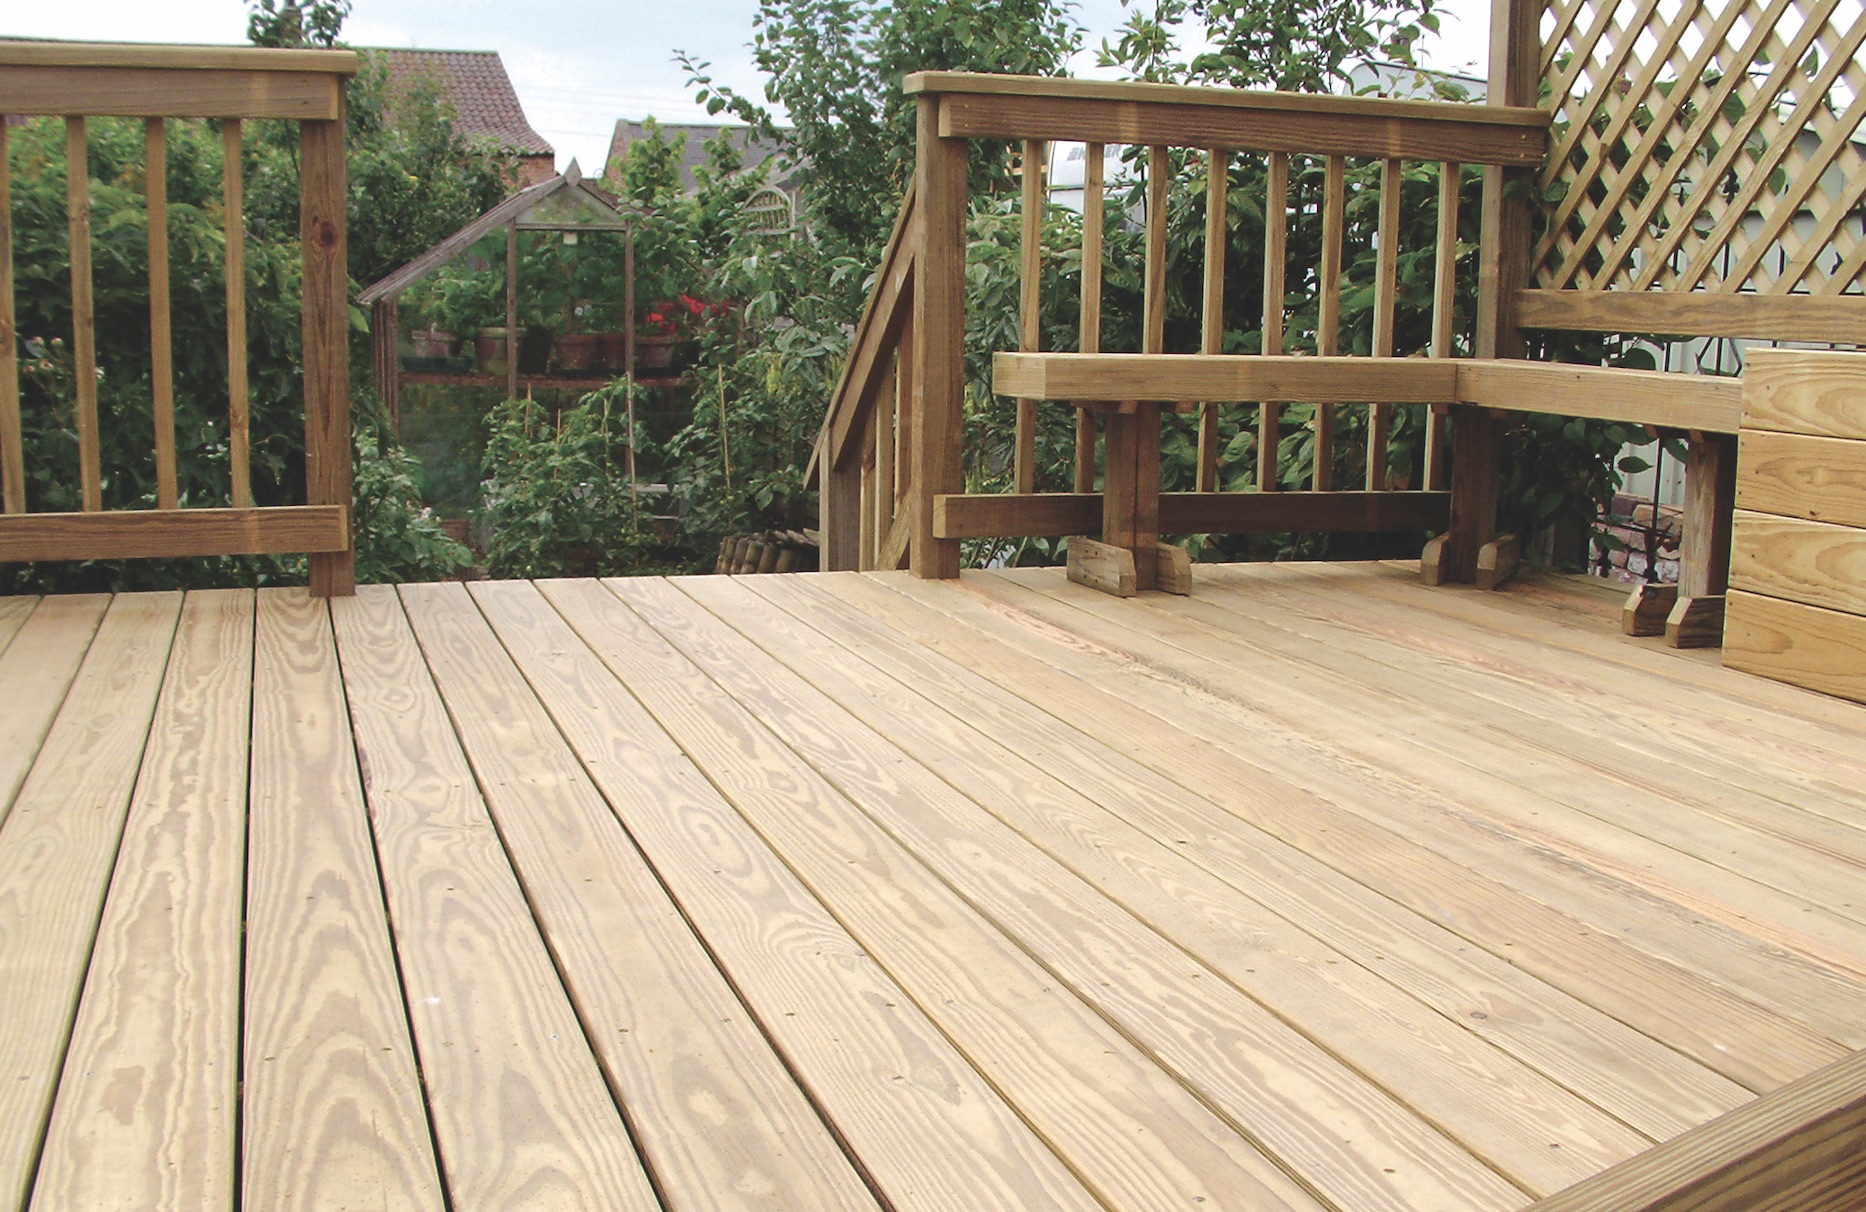 southern pine wood decking installed on a single family home